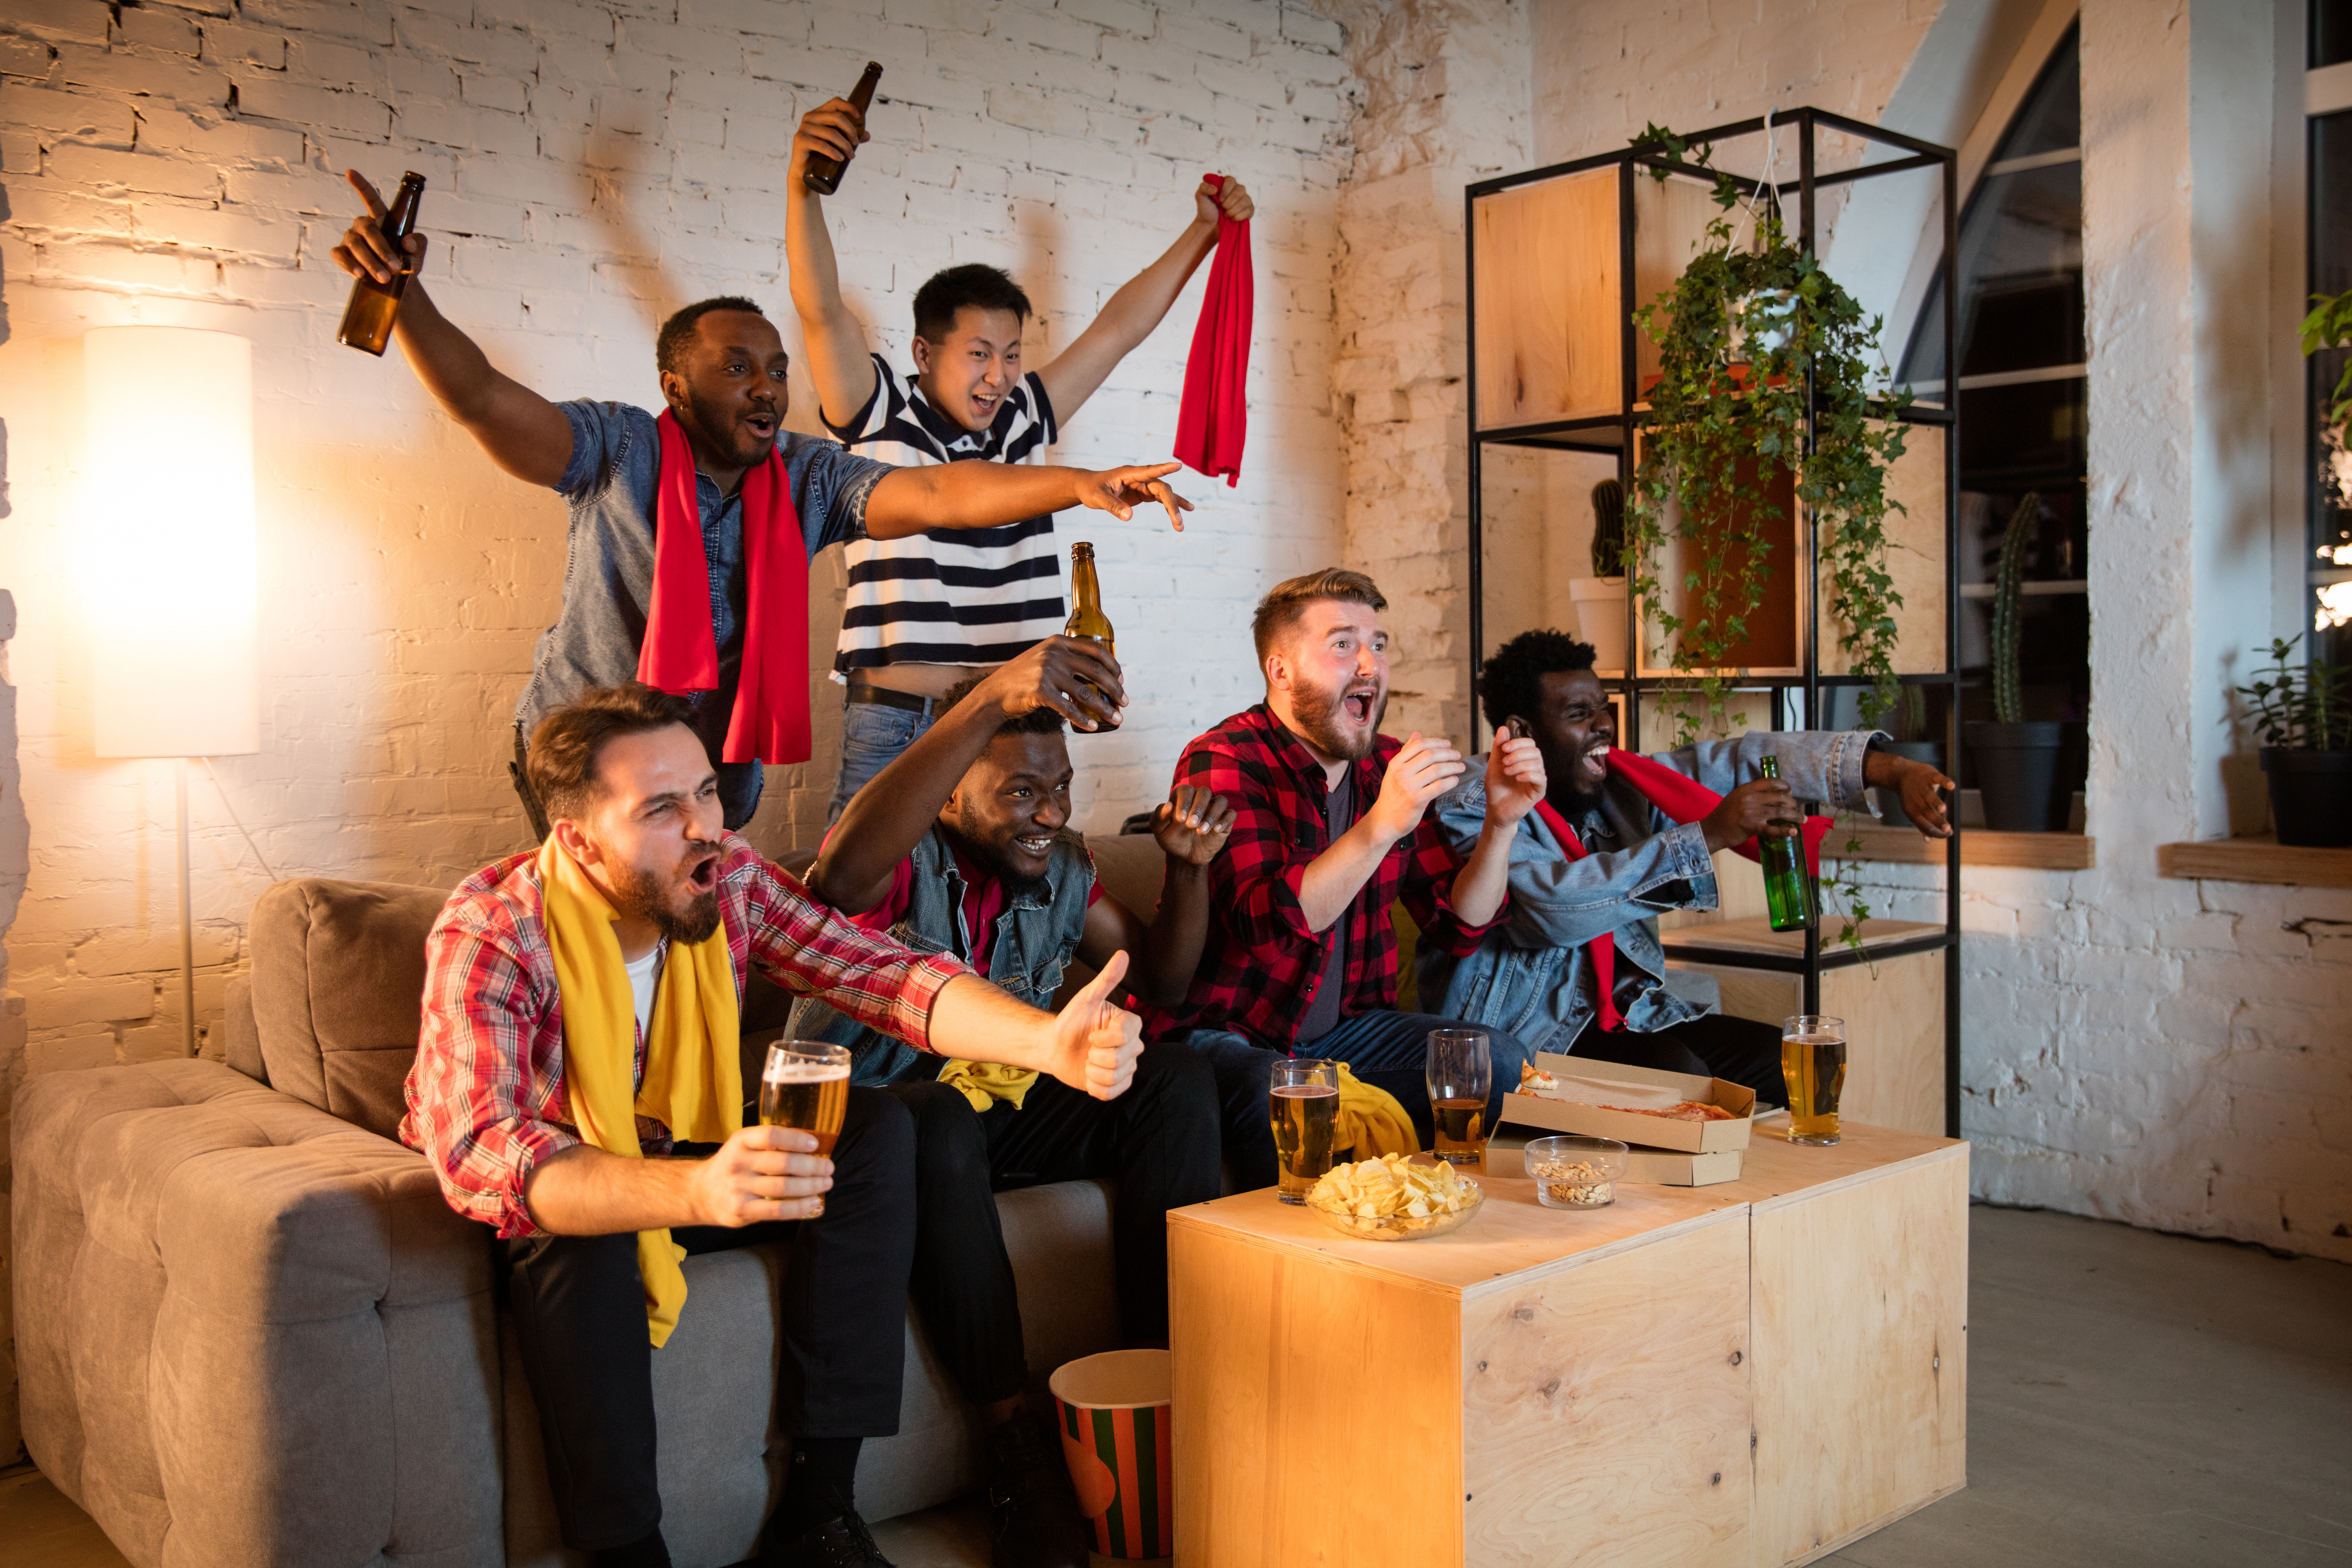 Group of friends watching TV, sport match together. Emotional fans cheering for favourite team, watching on exciting game. Concept of friendship, leisure activity, emotions